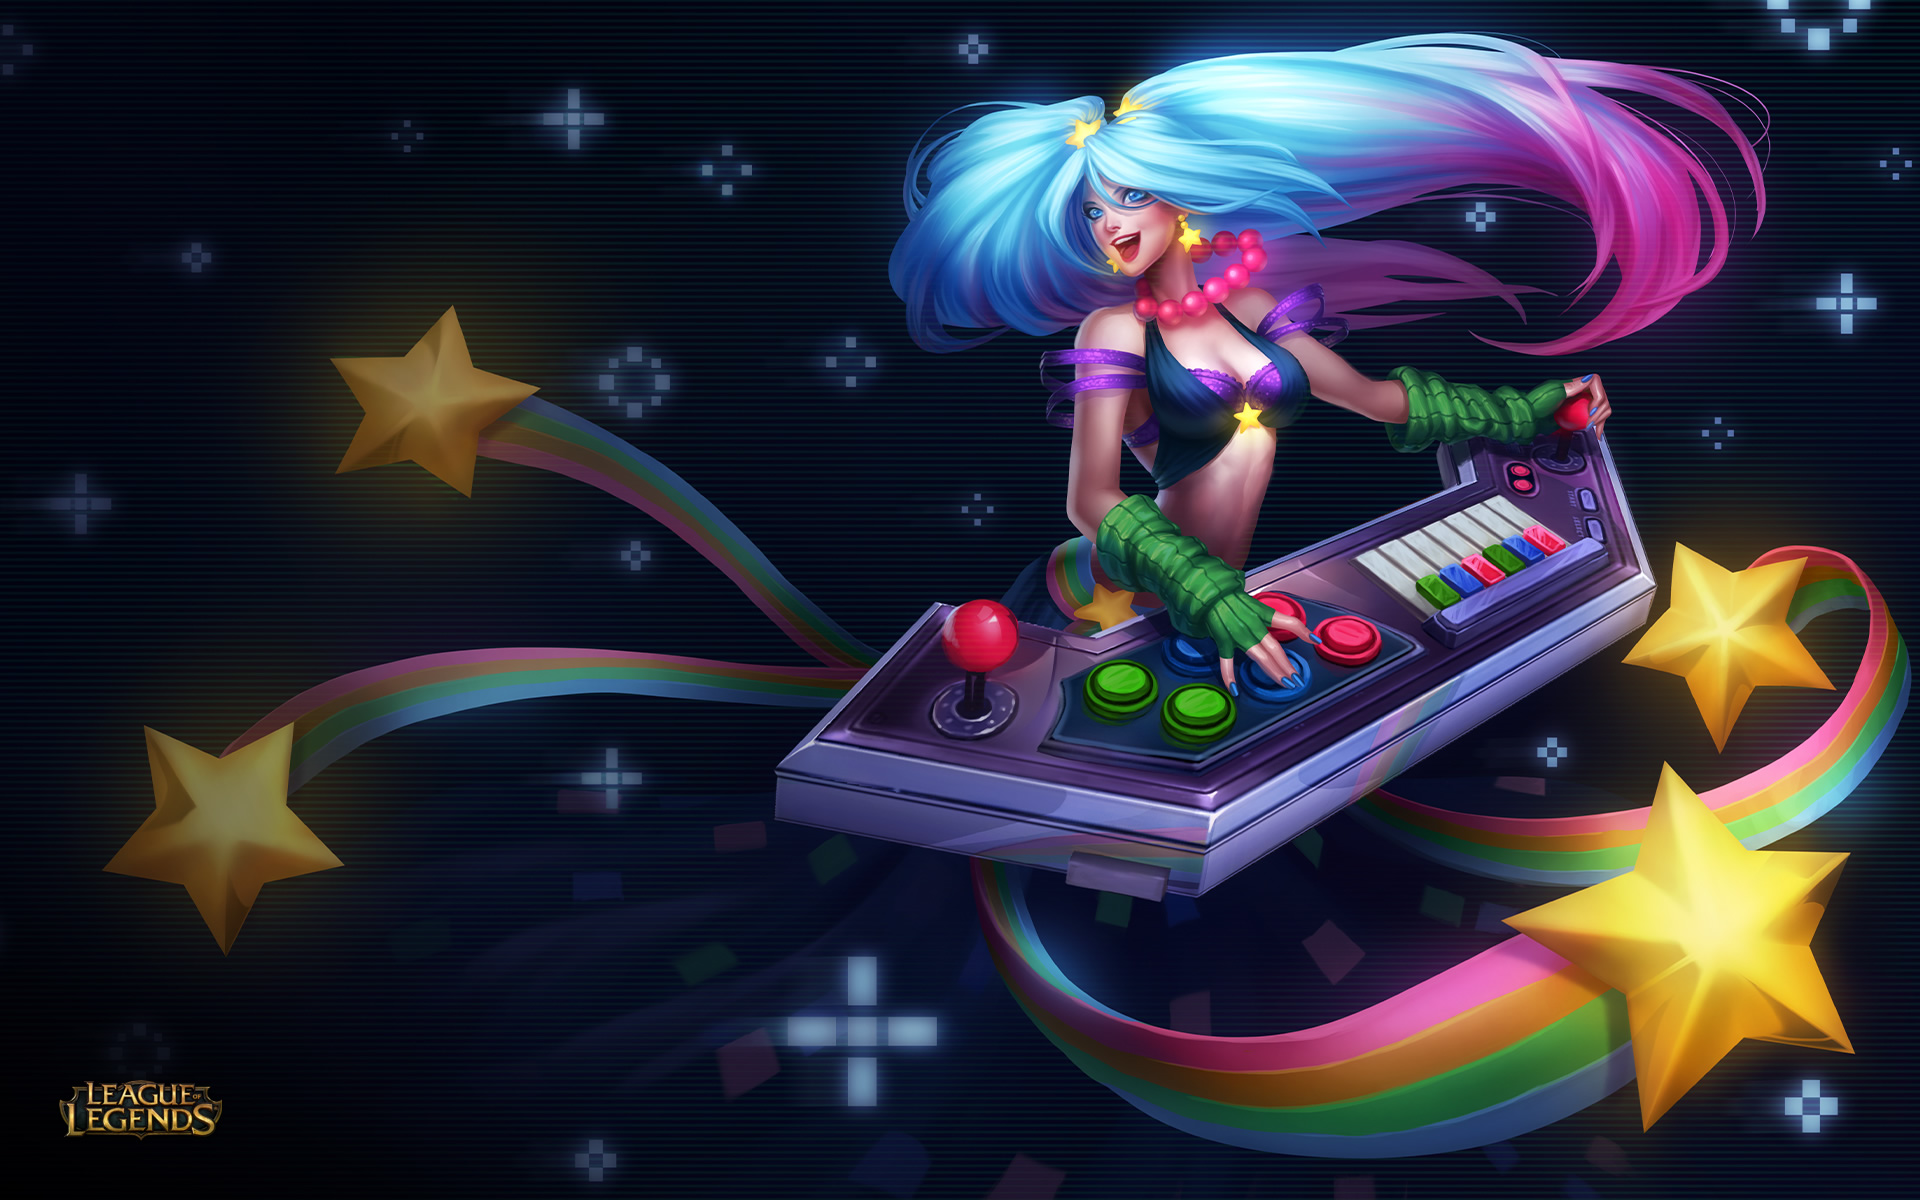 Arcade Sona Wallpaper